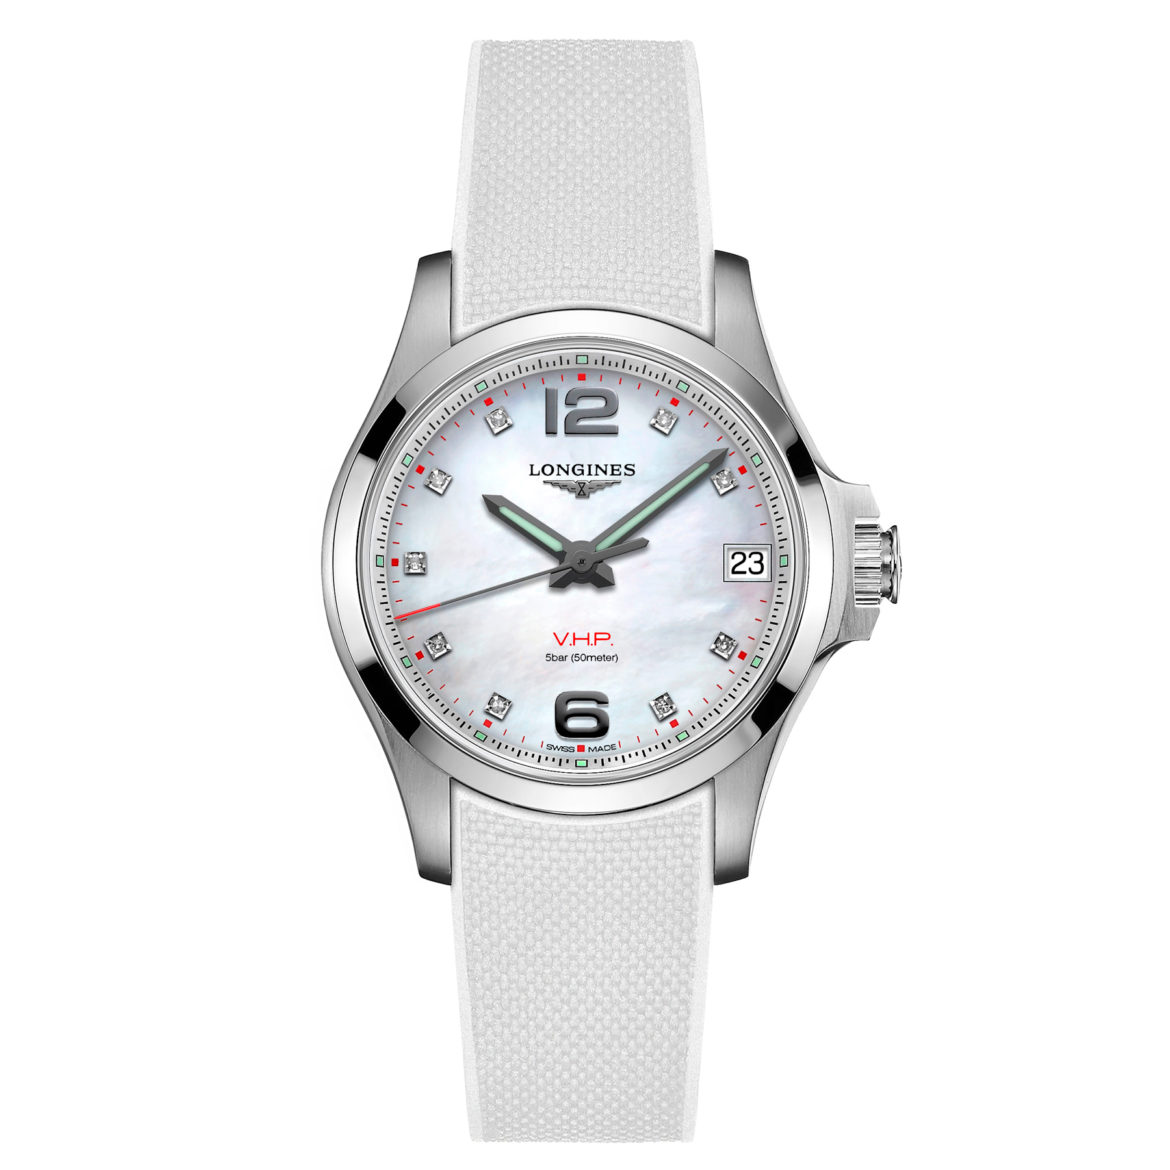 LONGINES</br/>Conquest VPH </br/>L33164879